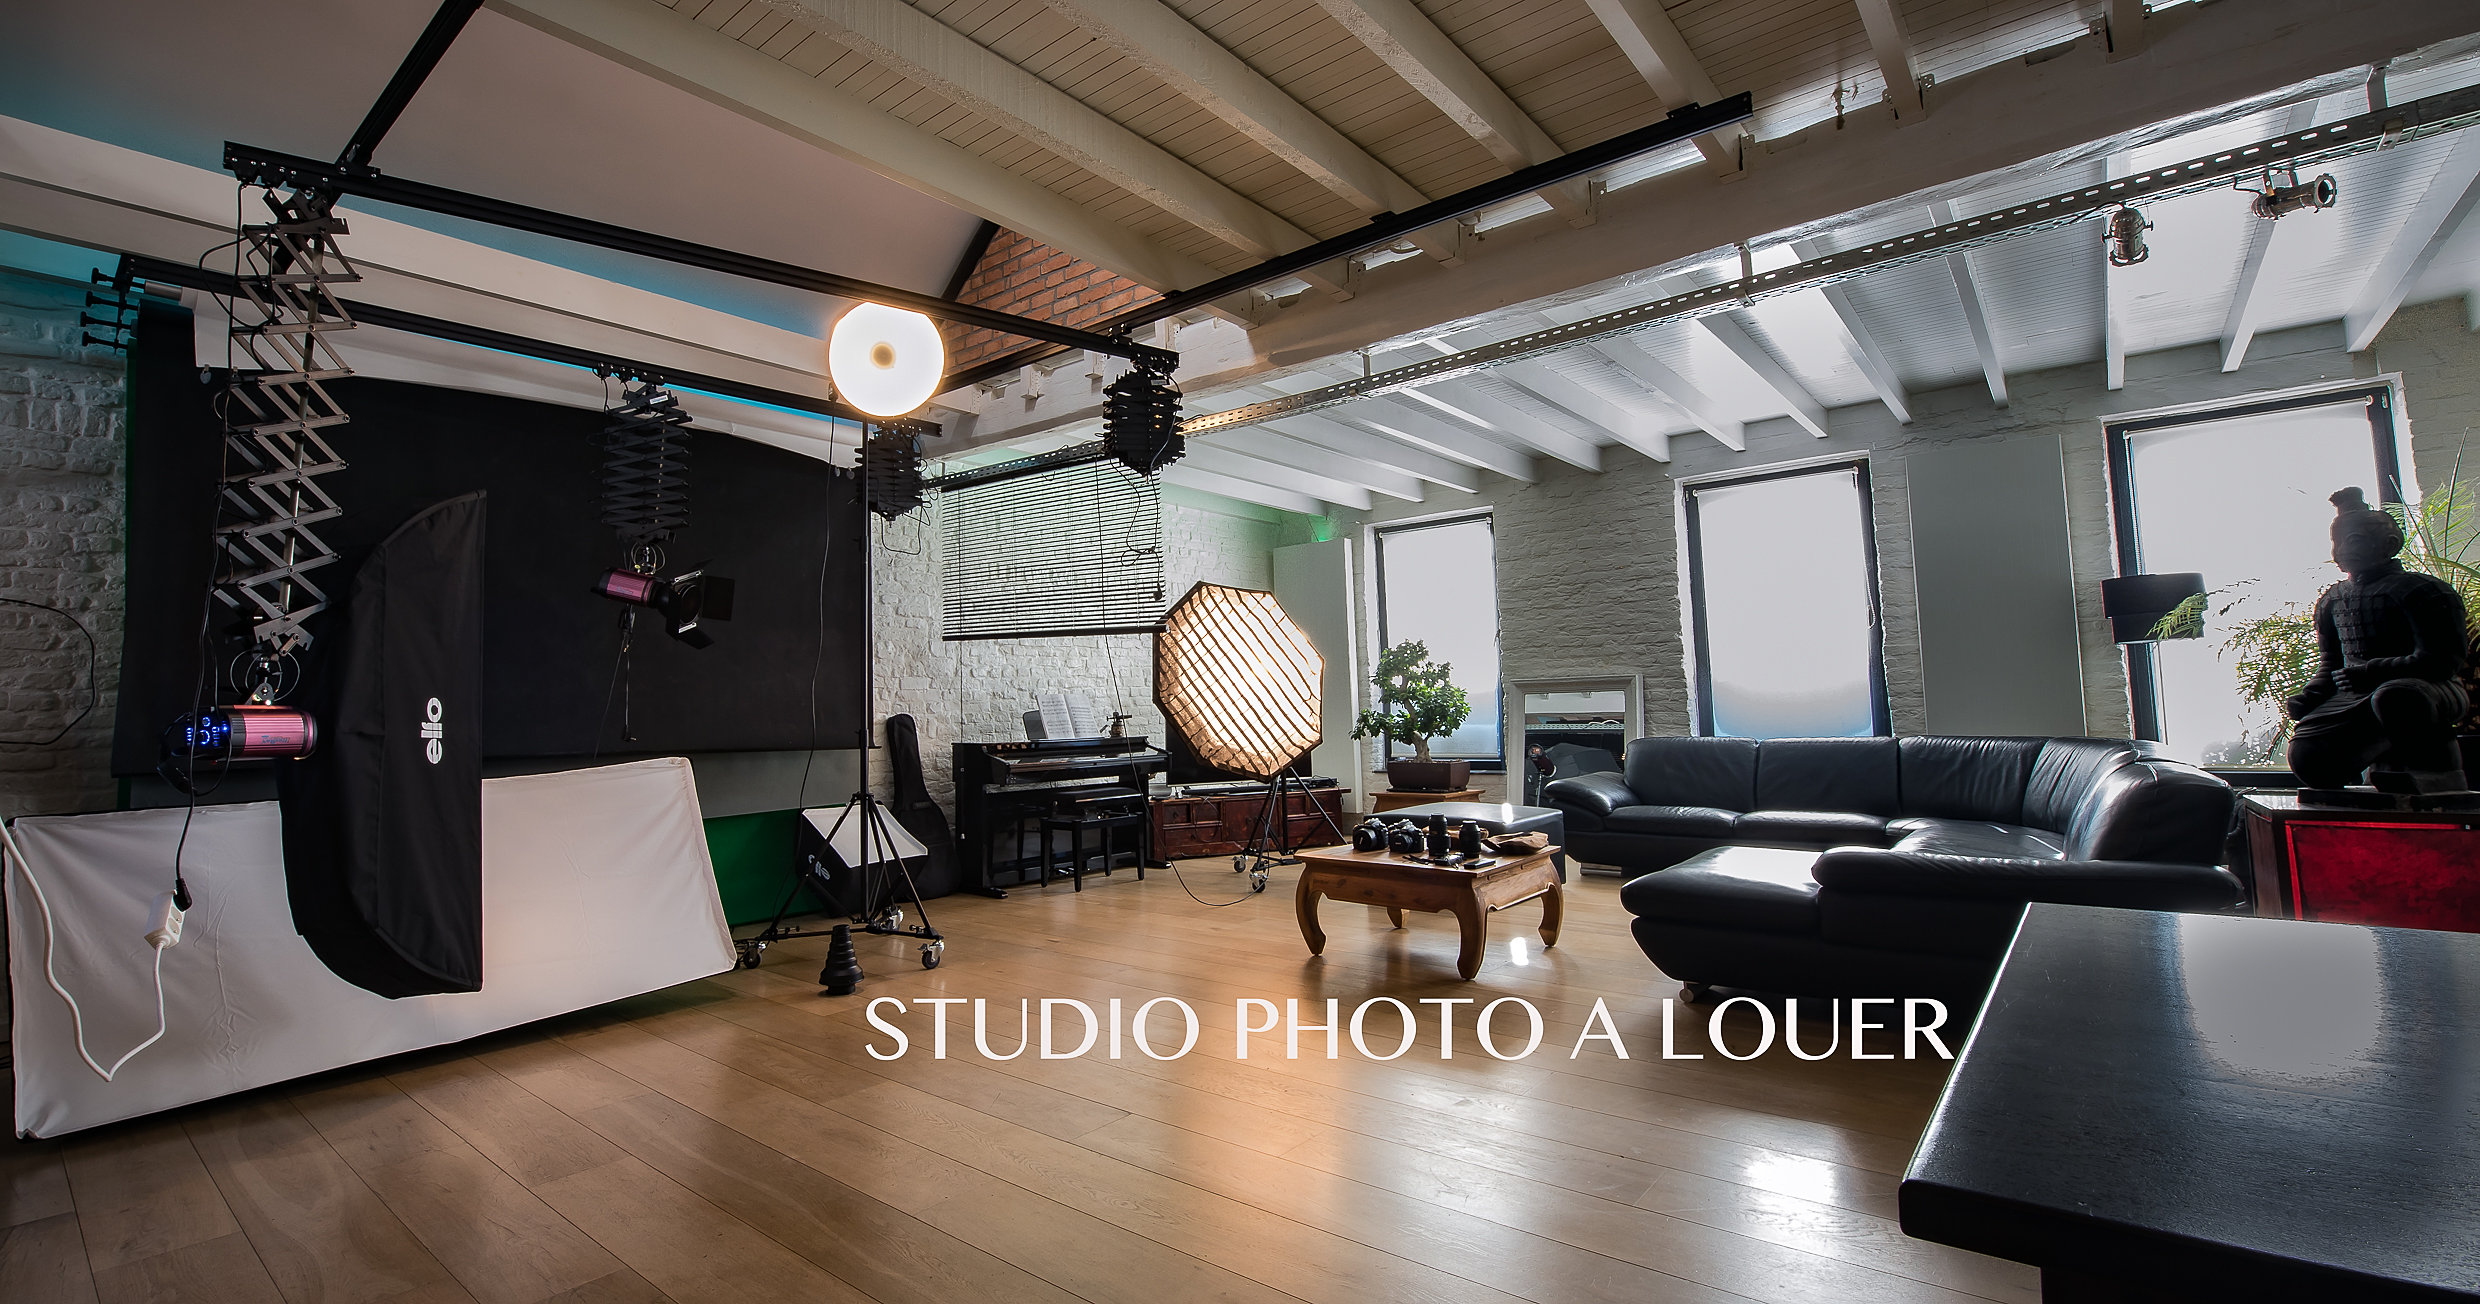 thierry fostier photographe studio. Black Bedroom Furniture Sets. Home Design Ideas